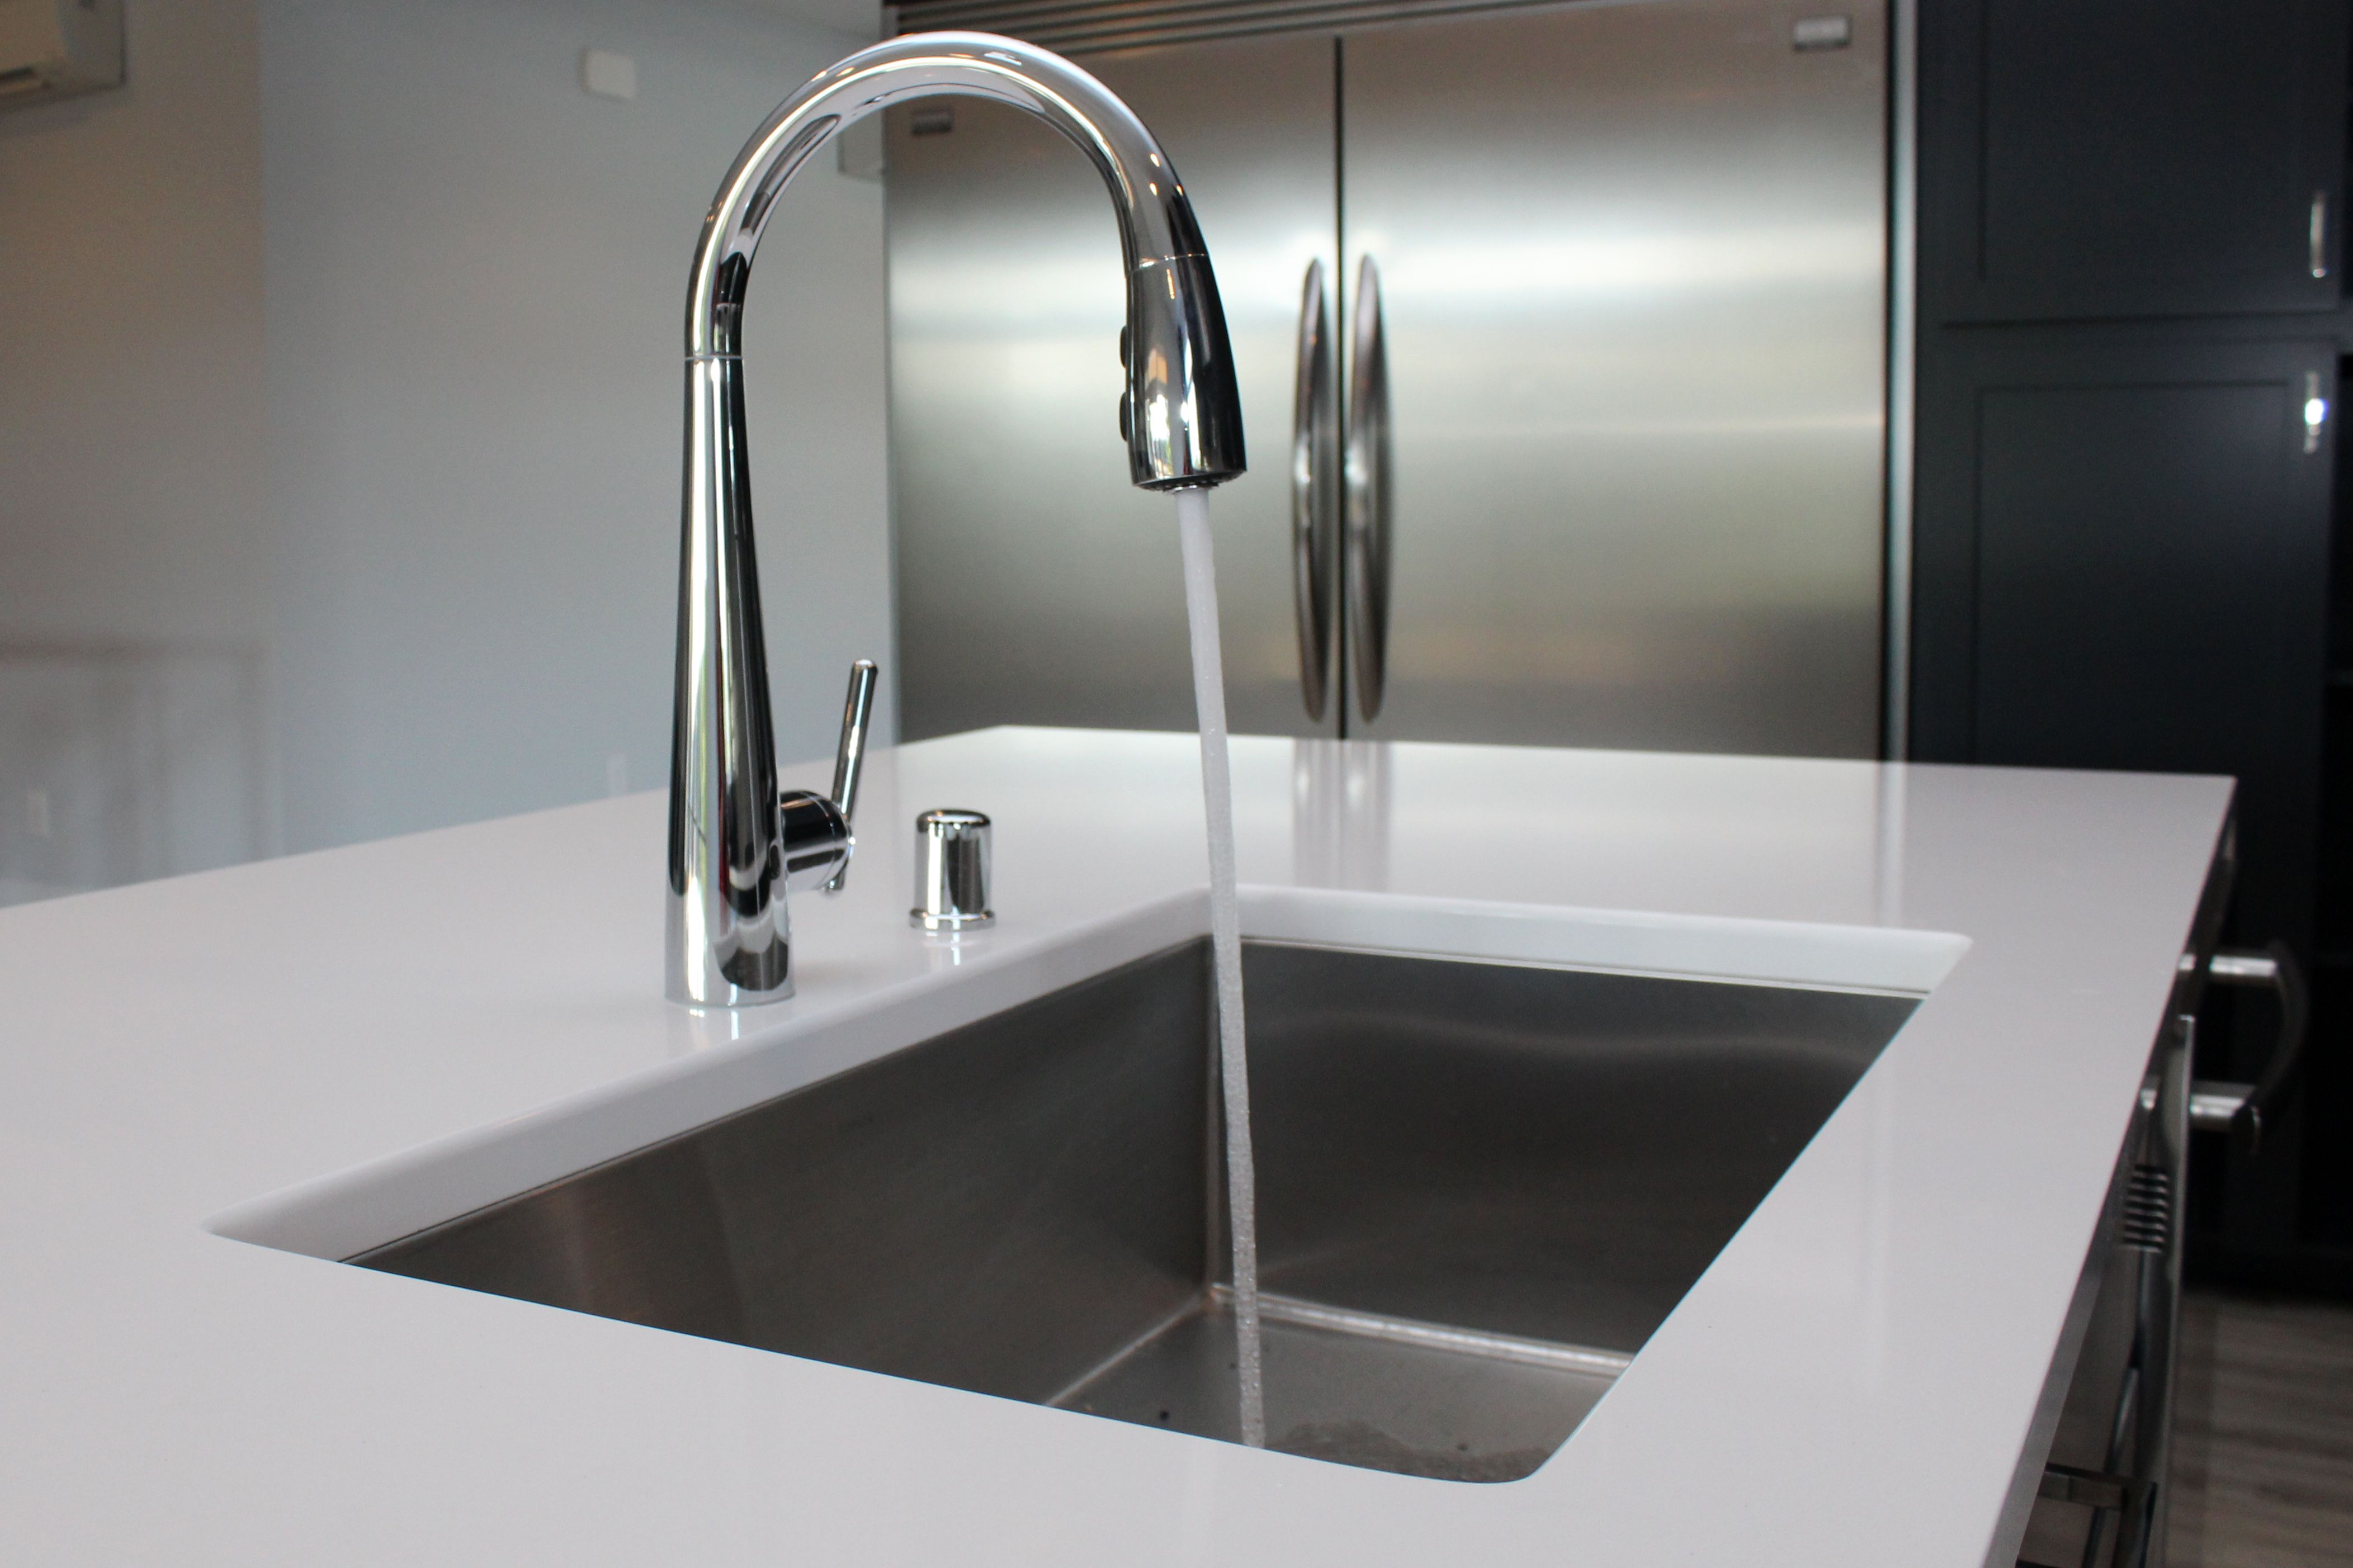 White Quartz Counter With Stainless Steel Undermount Sink And